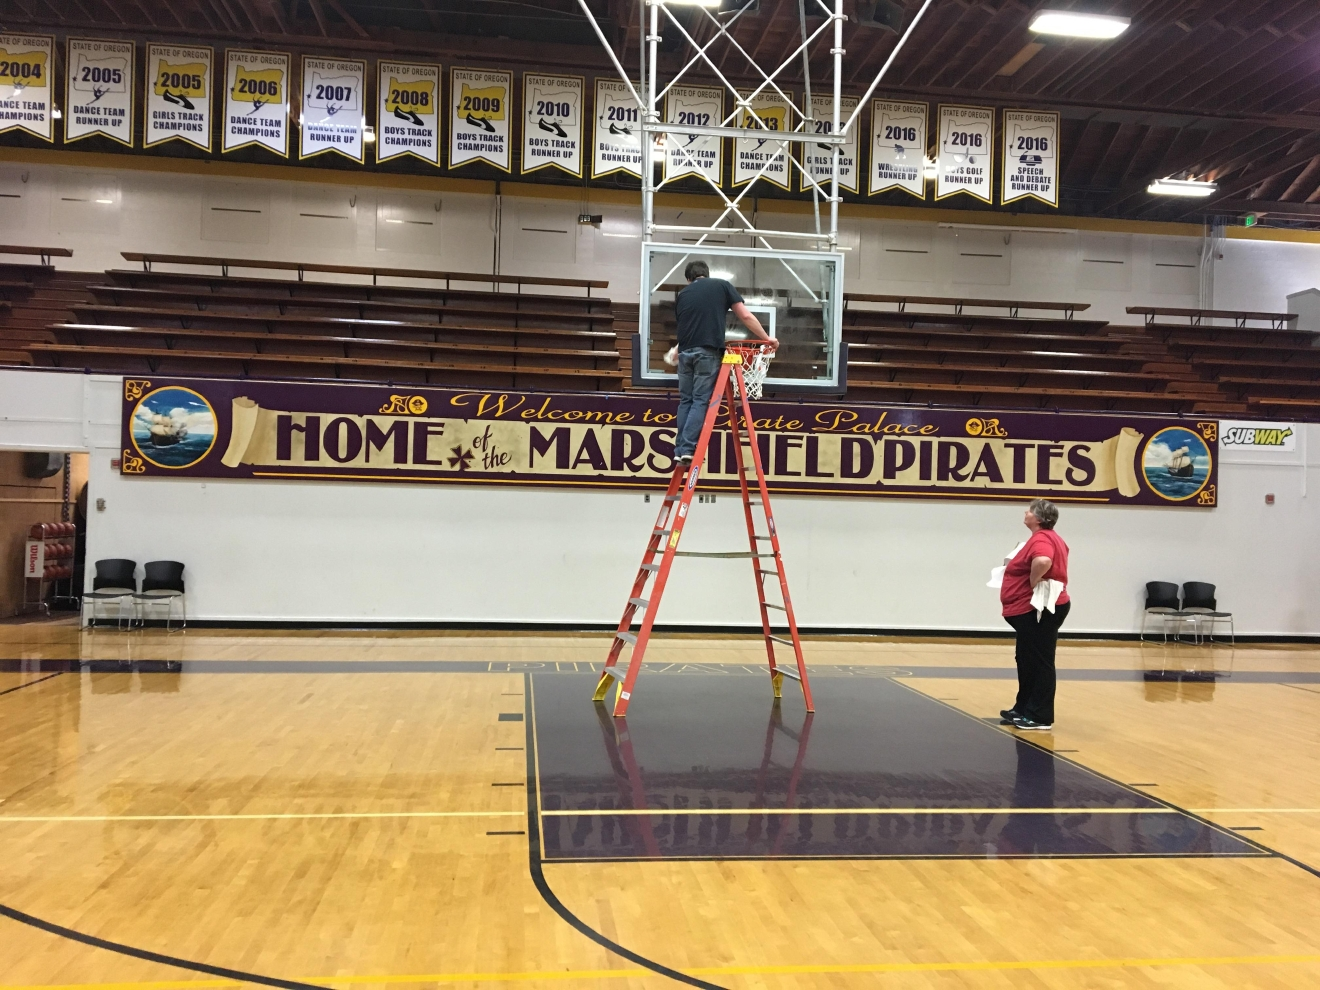 Crews at Marshfield High School prepare for the 3A state basketball tournament beginning March 2, 2017. (SBG photo)